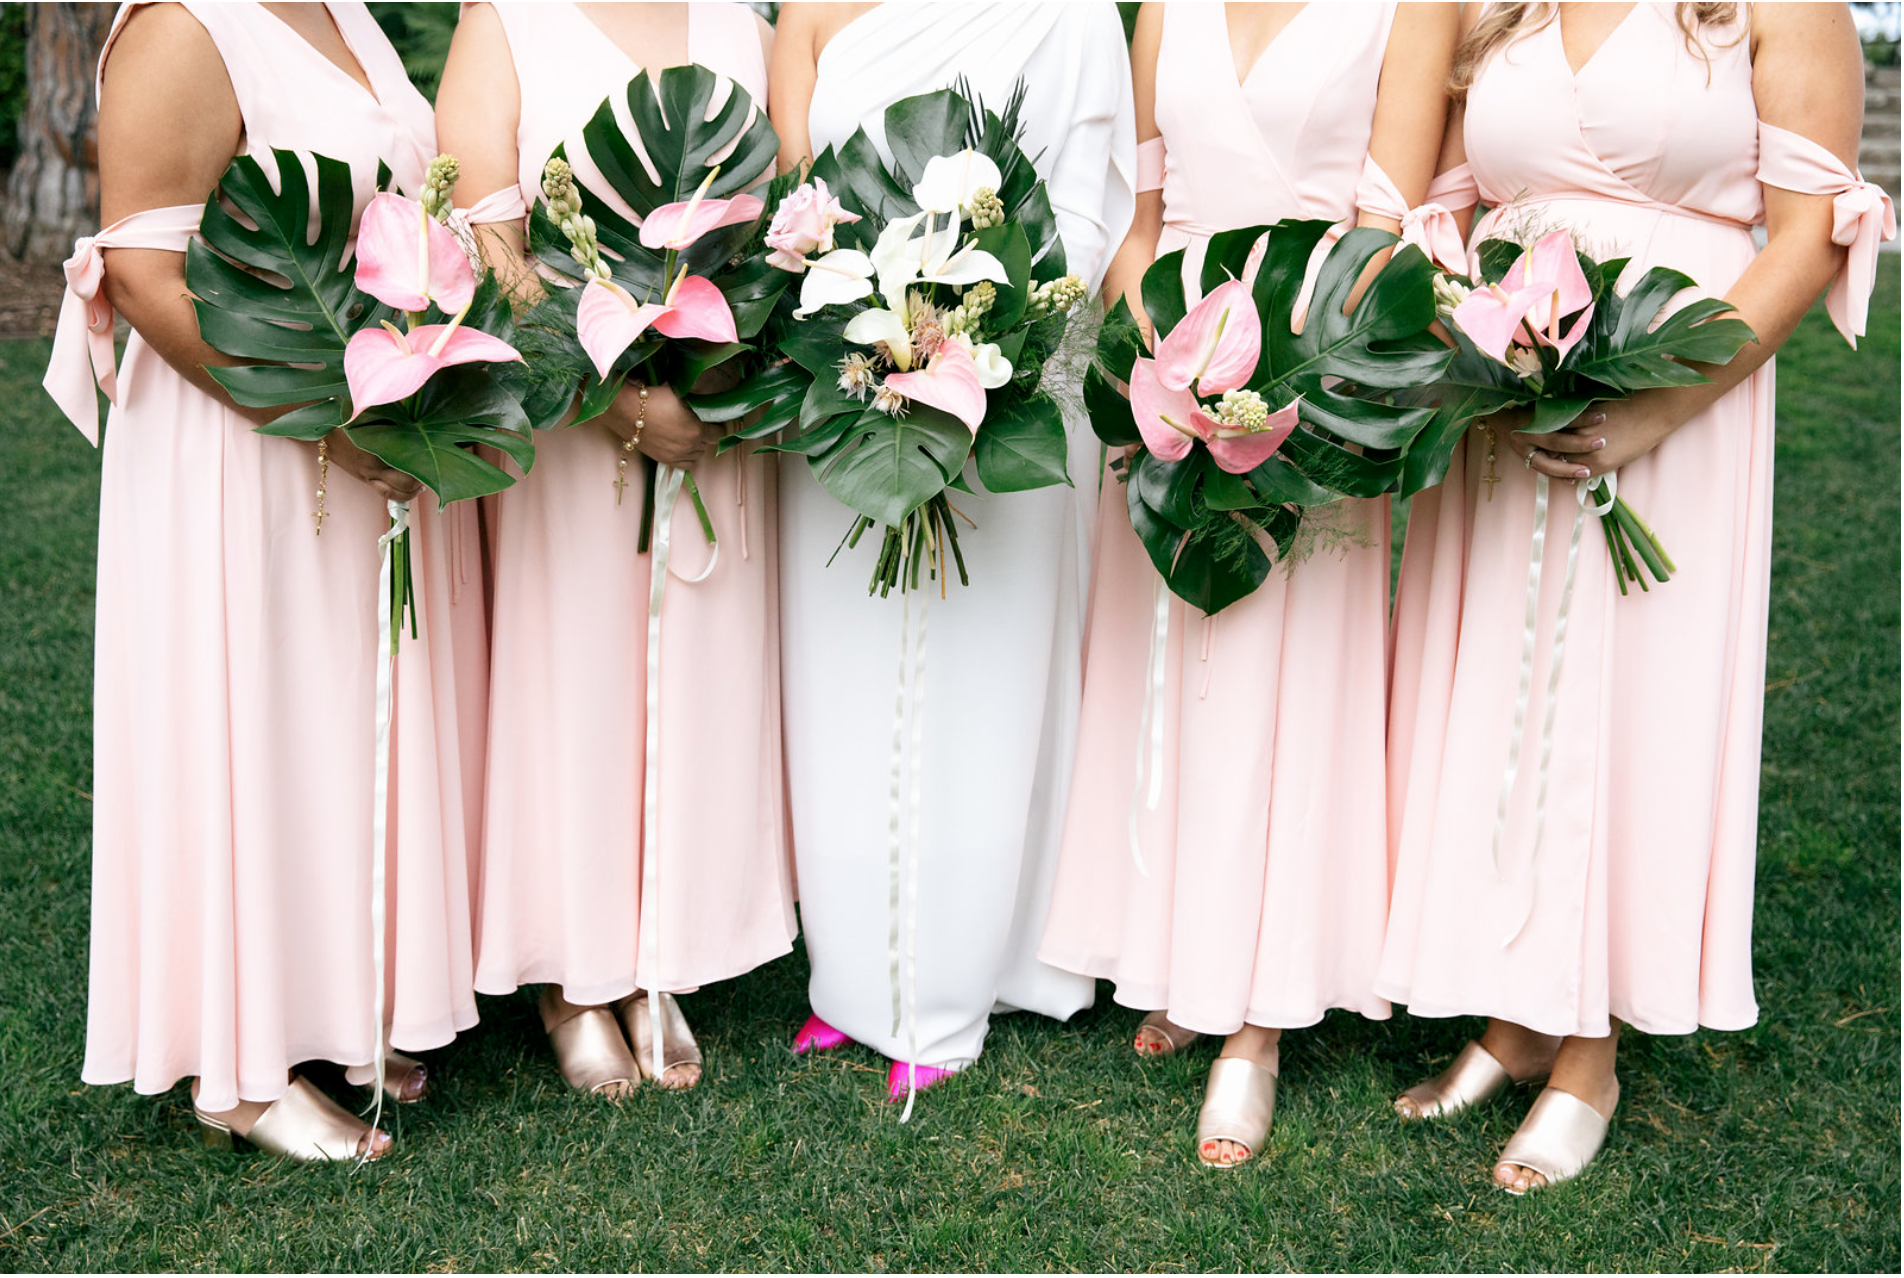 Adriana & her bridesmaids- Photo: Jenn Emerling